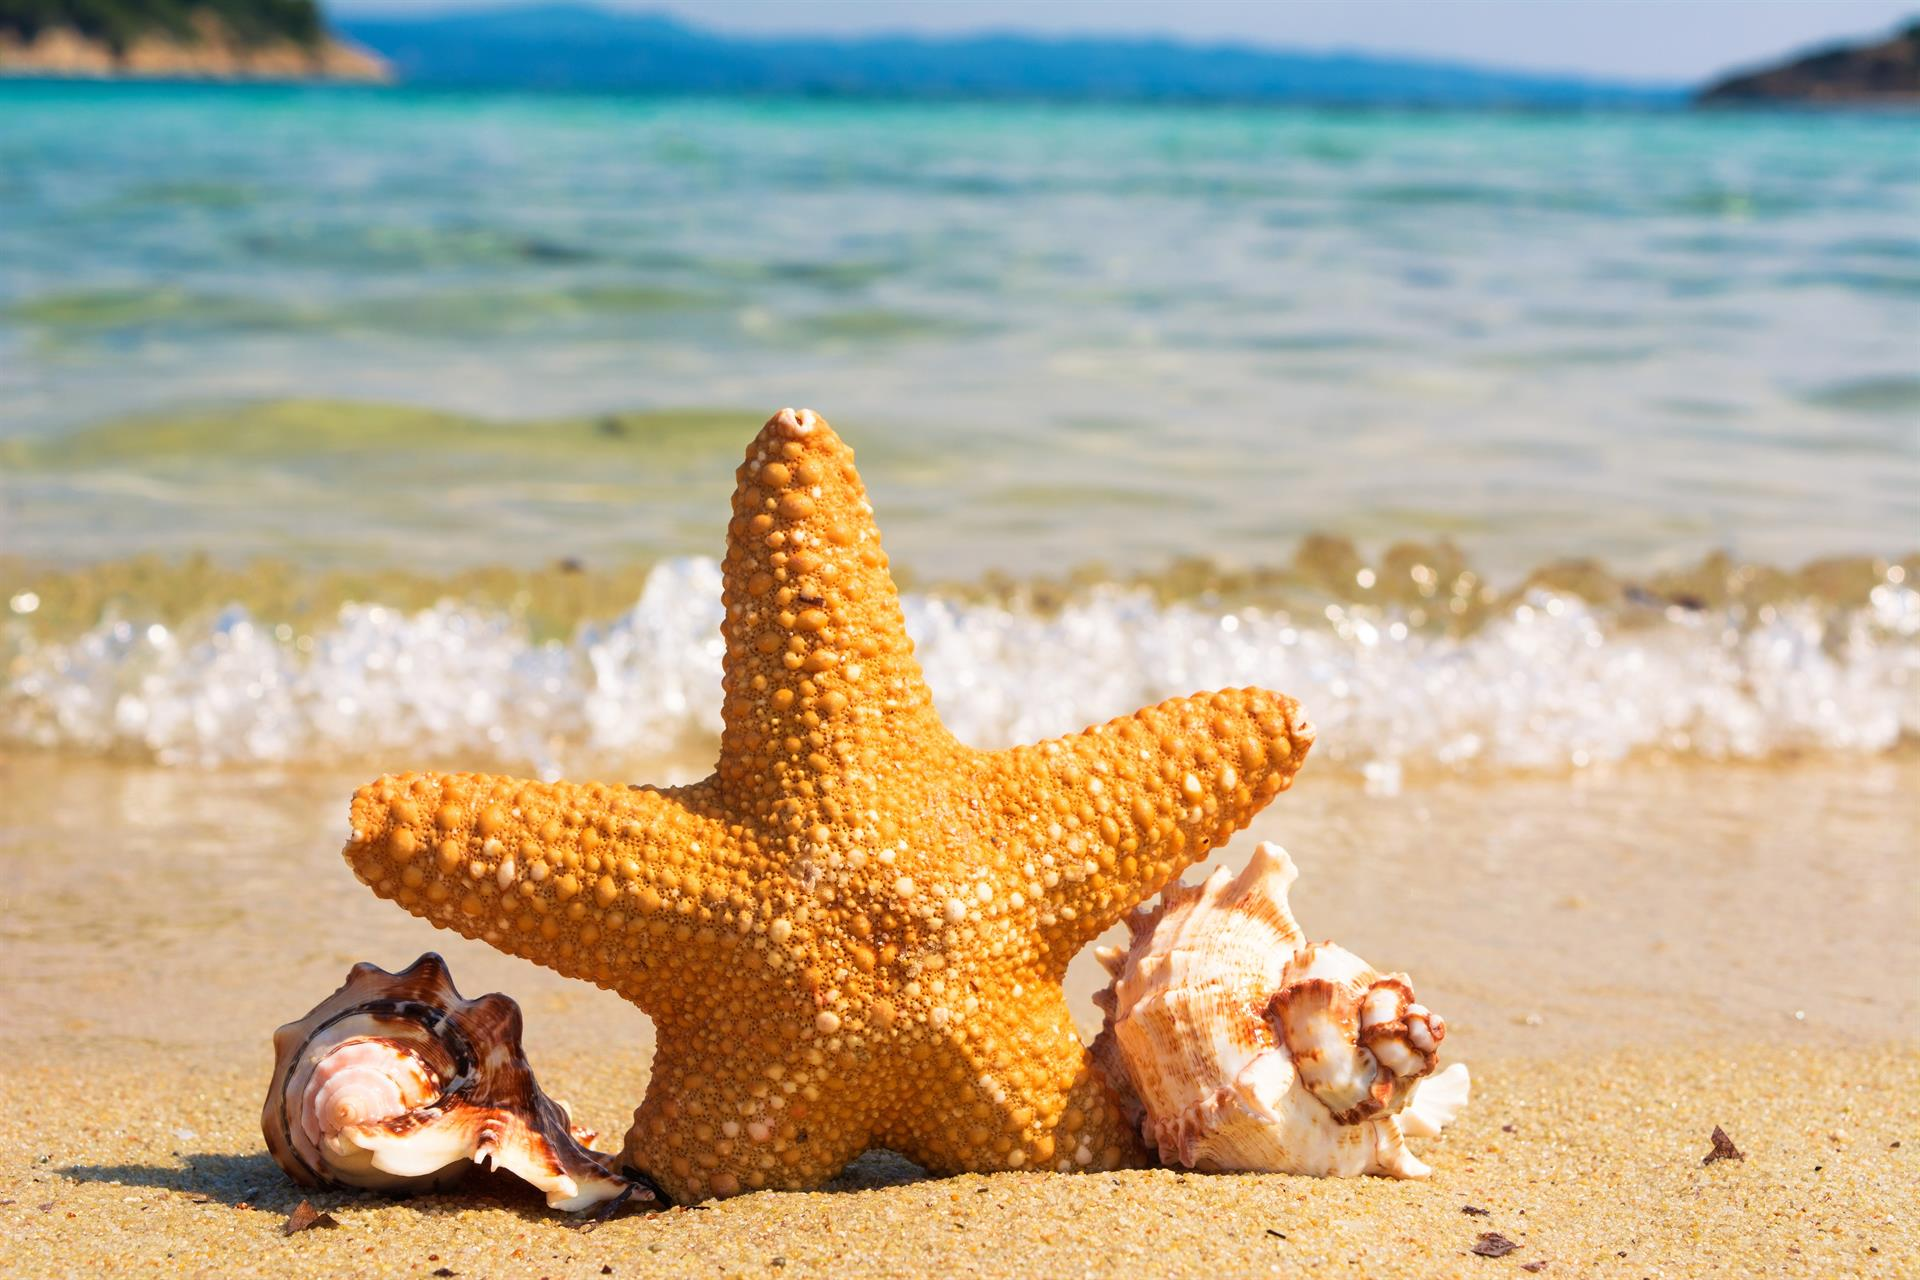 A starfish and some seashells on a beach